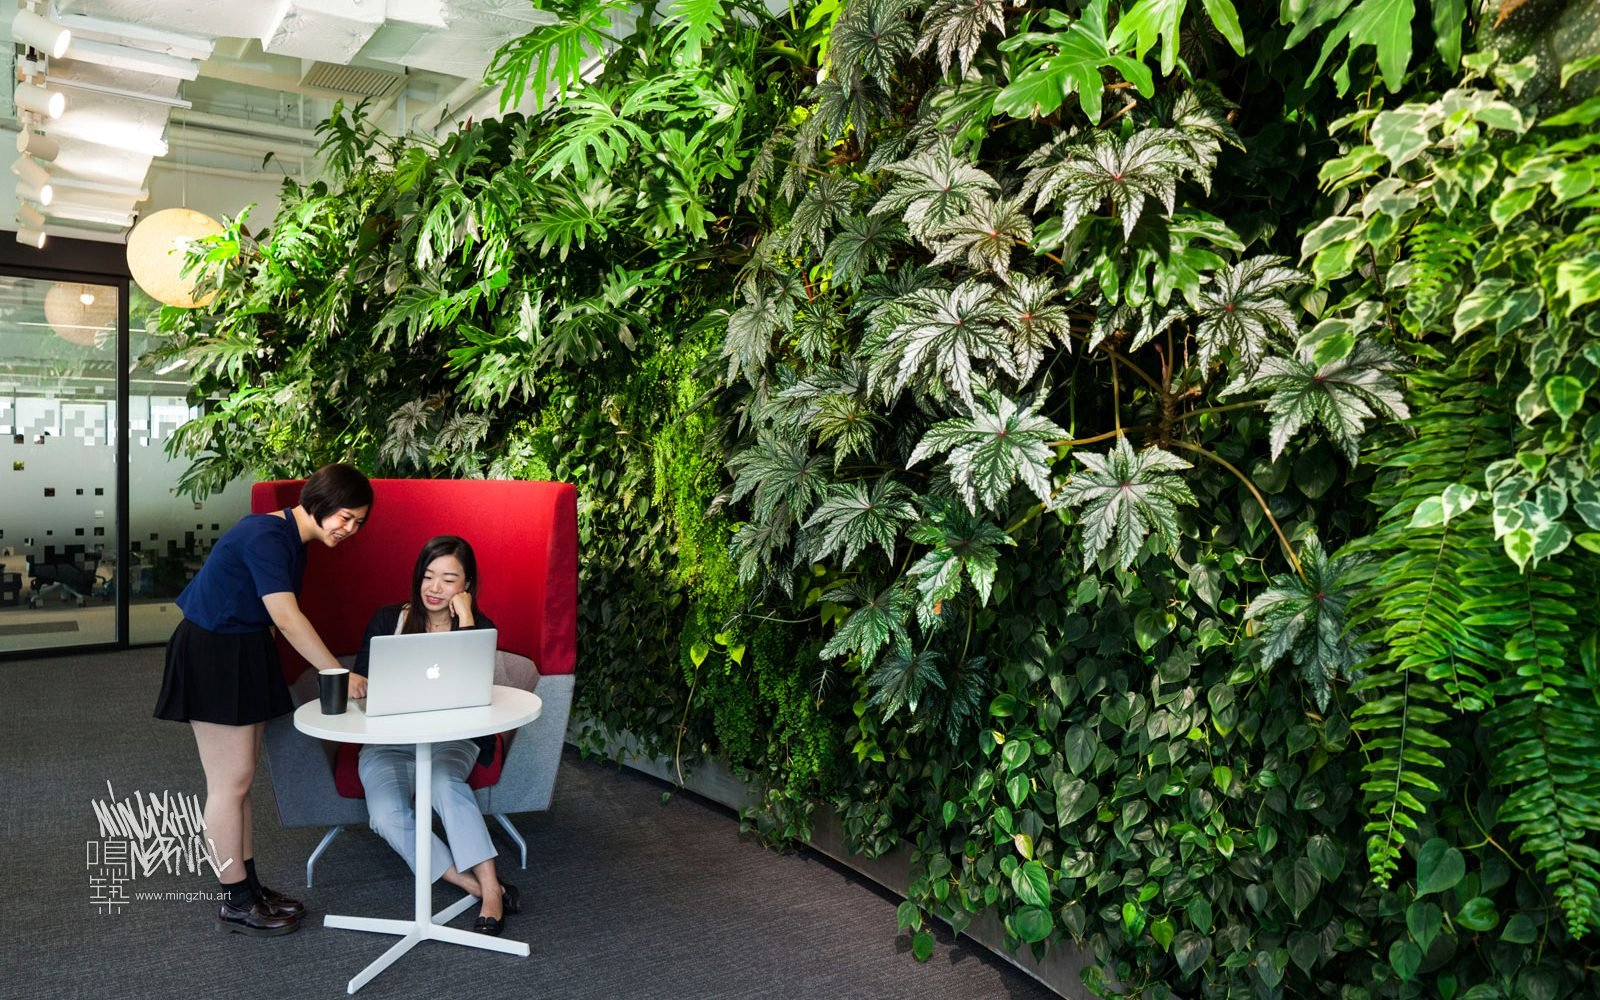 At Mingzhu Nerval, we thrive at creating the most beautiful vertical gardens in the world. For Google, we created a rainforest living wall design - Beijing, 2016.